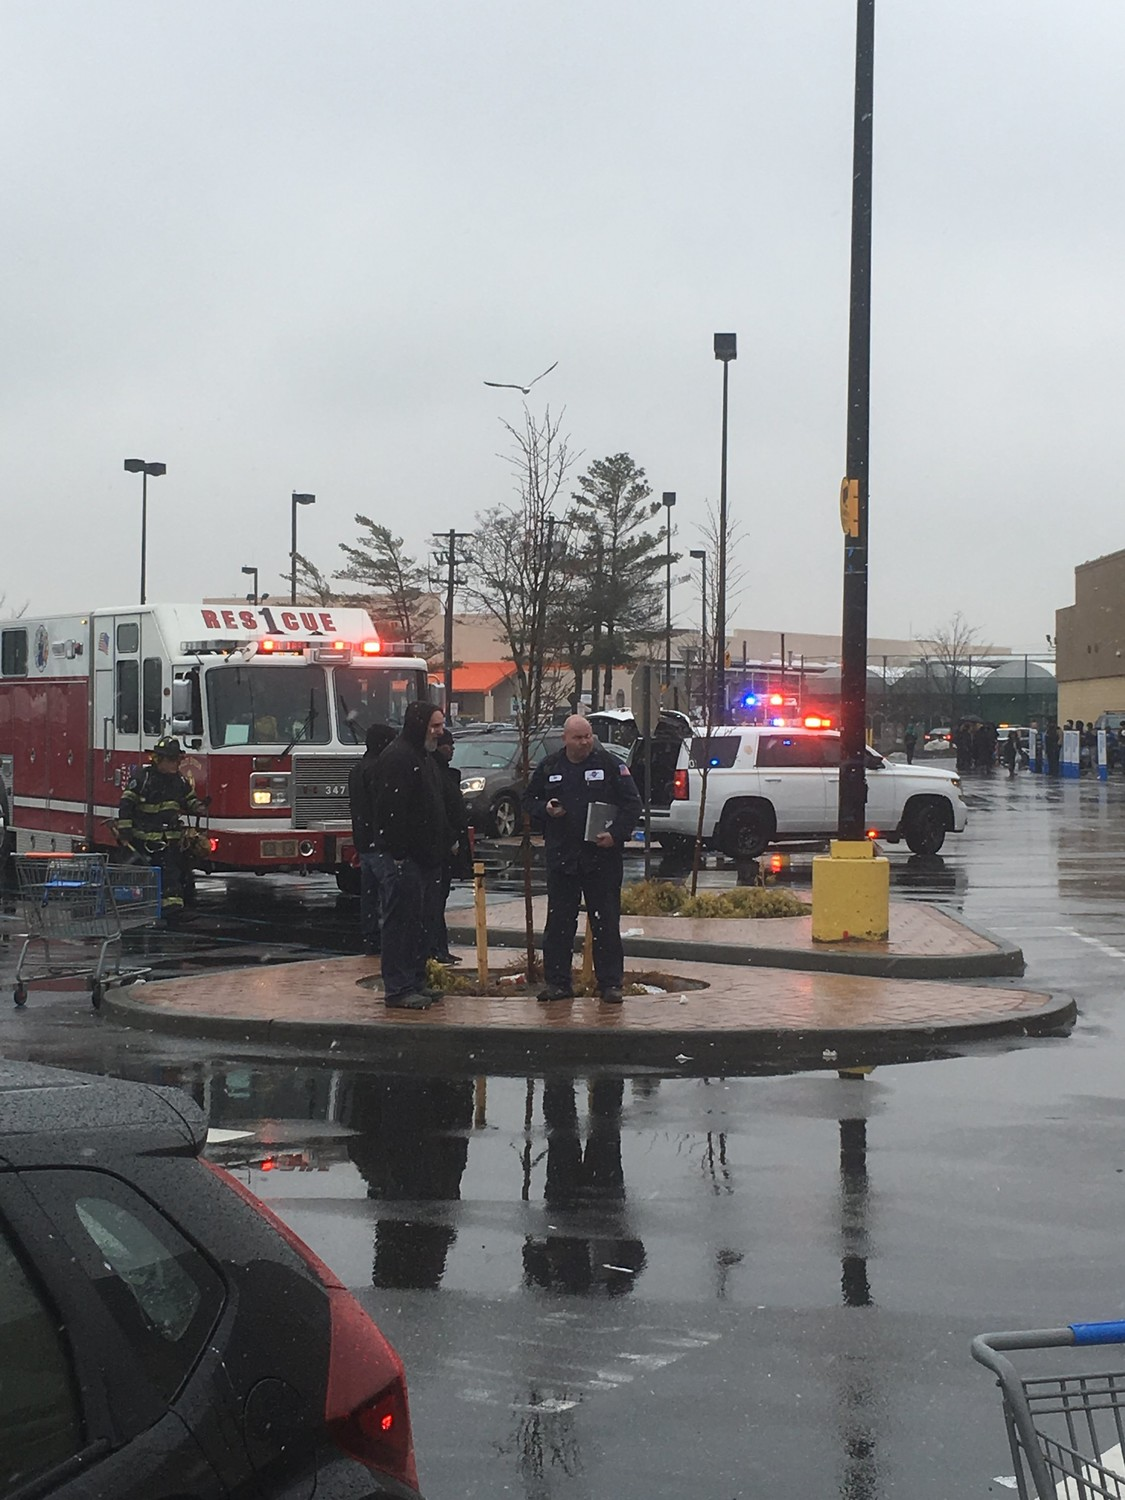 The Walmart at the Green Acres Mall had to be evacuated for a small electrical fire in the meat department.